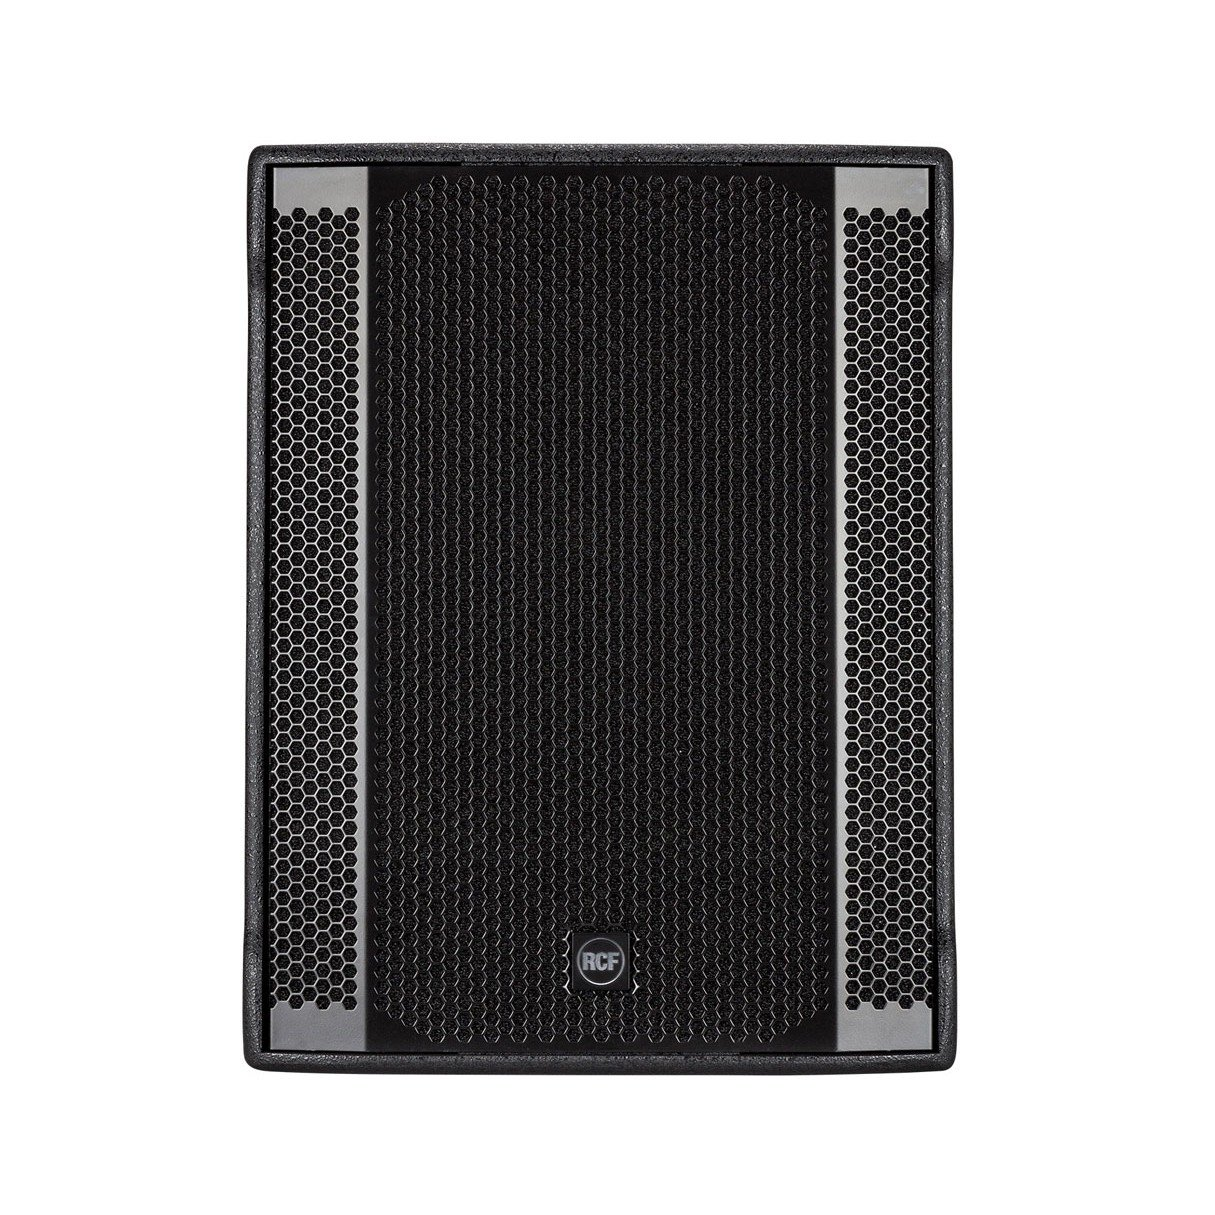 RCF SUB-708AS-MK2 Active 18 Powered Subwoofer